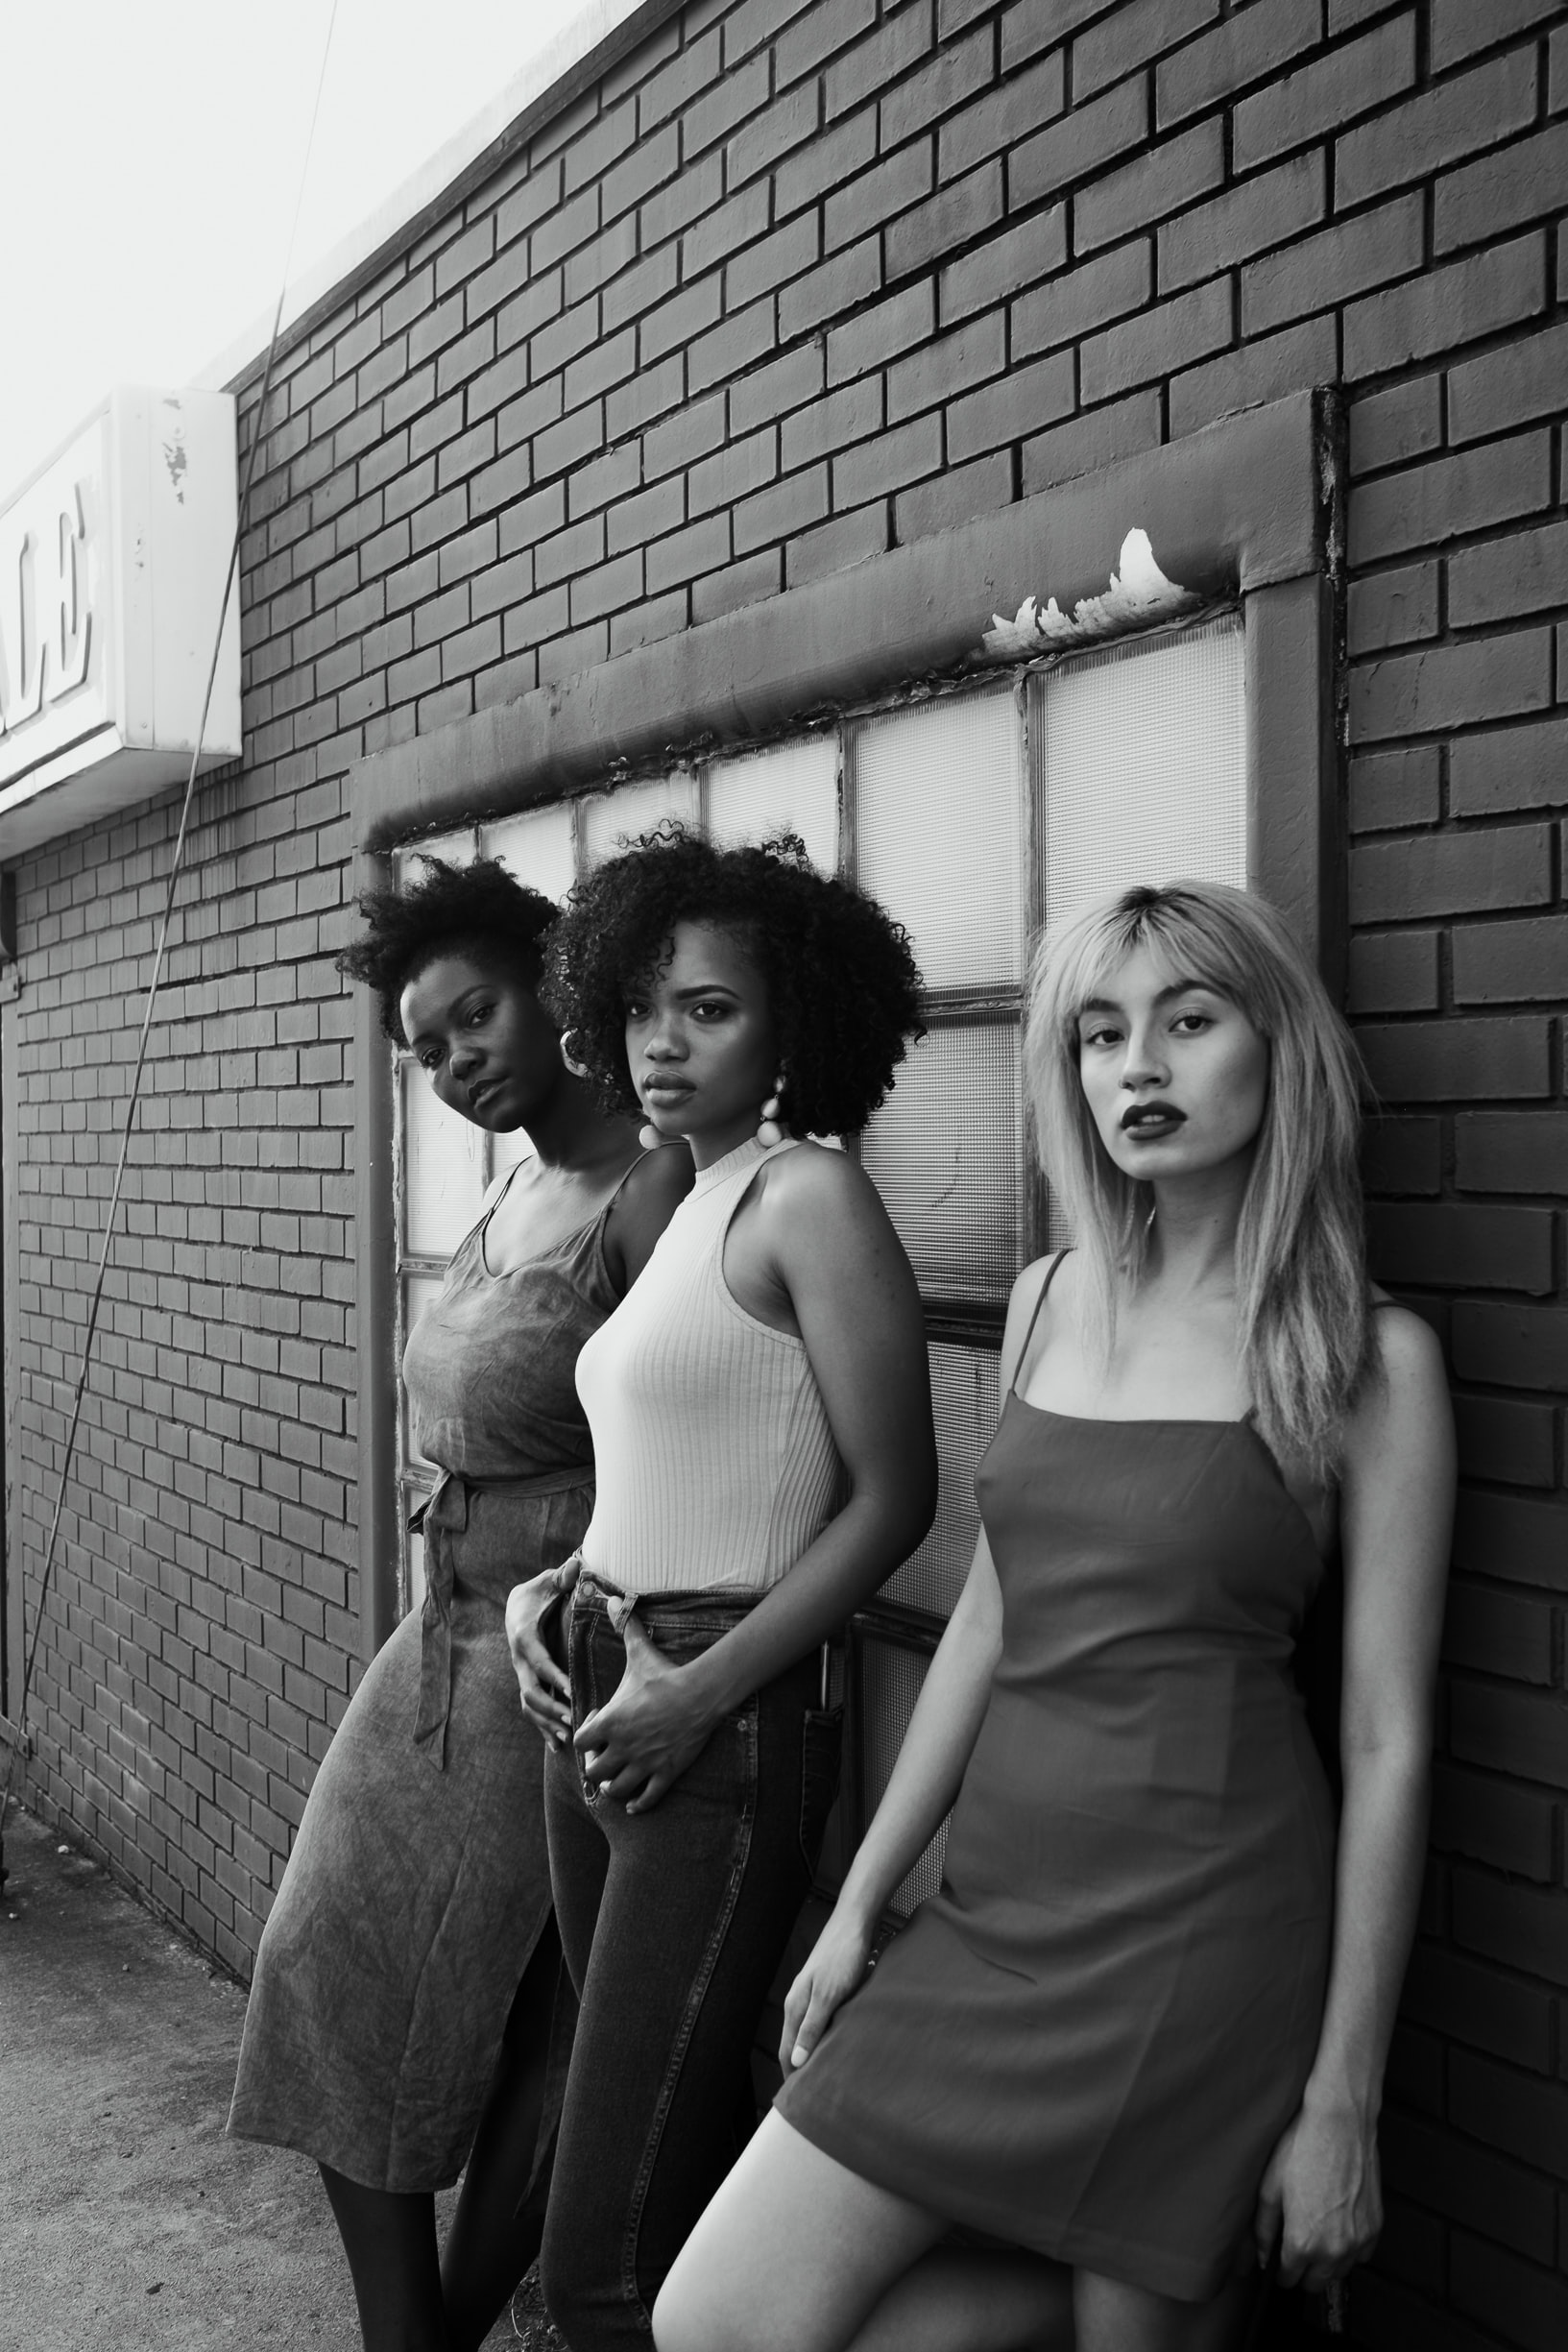 grayscale photo of three women leaning on wall